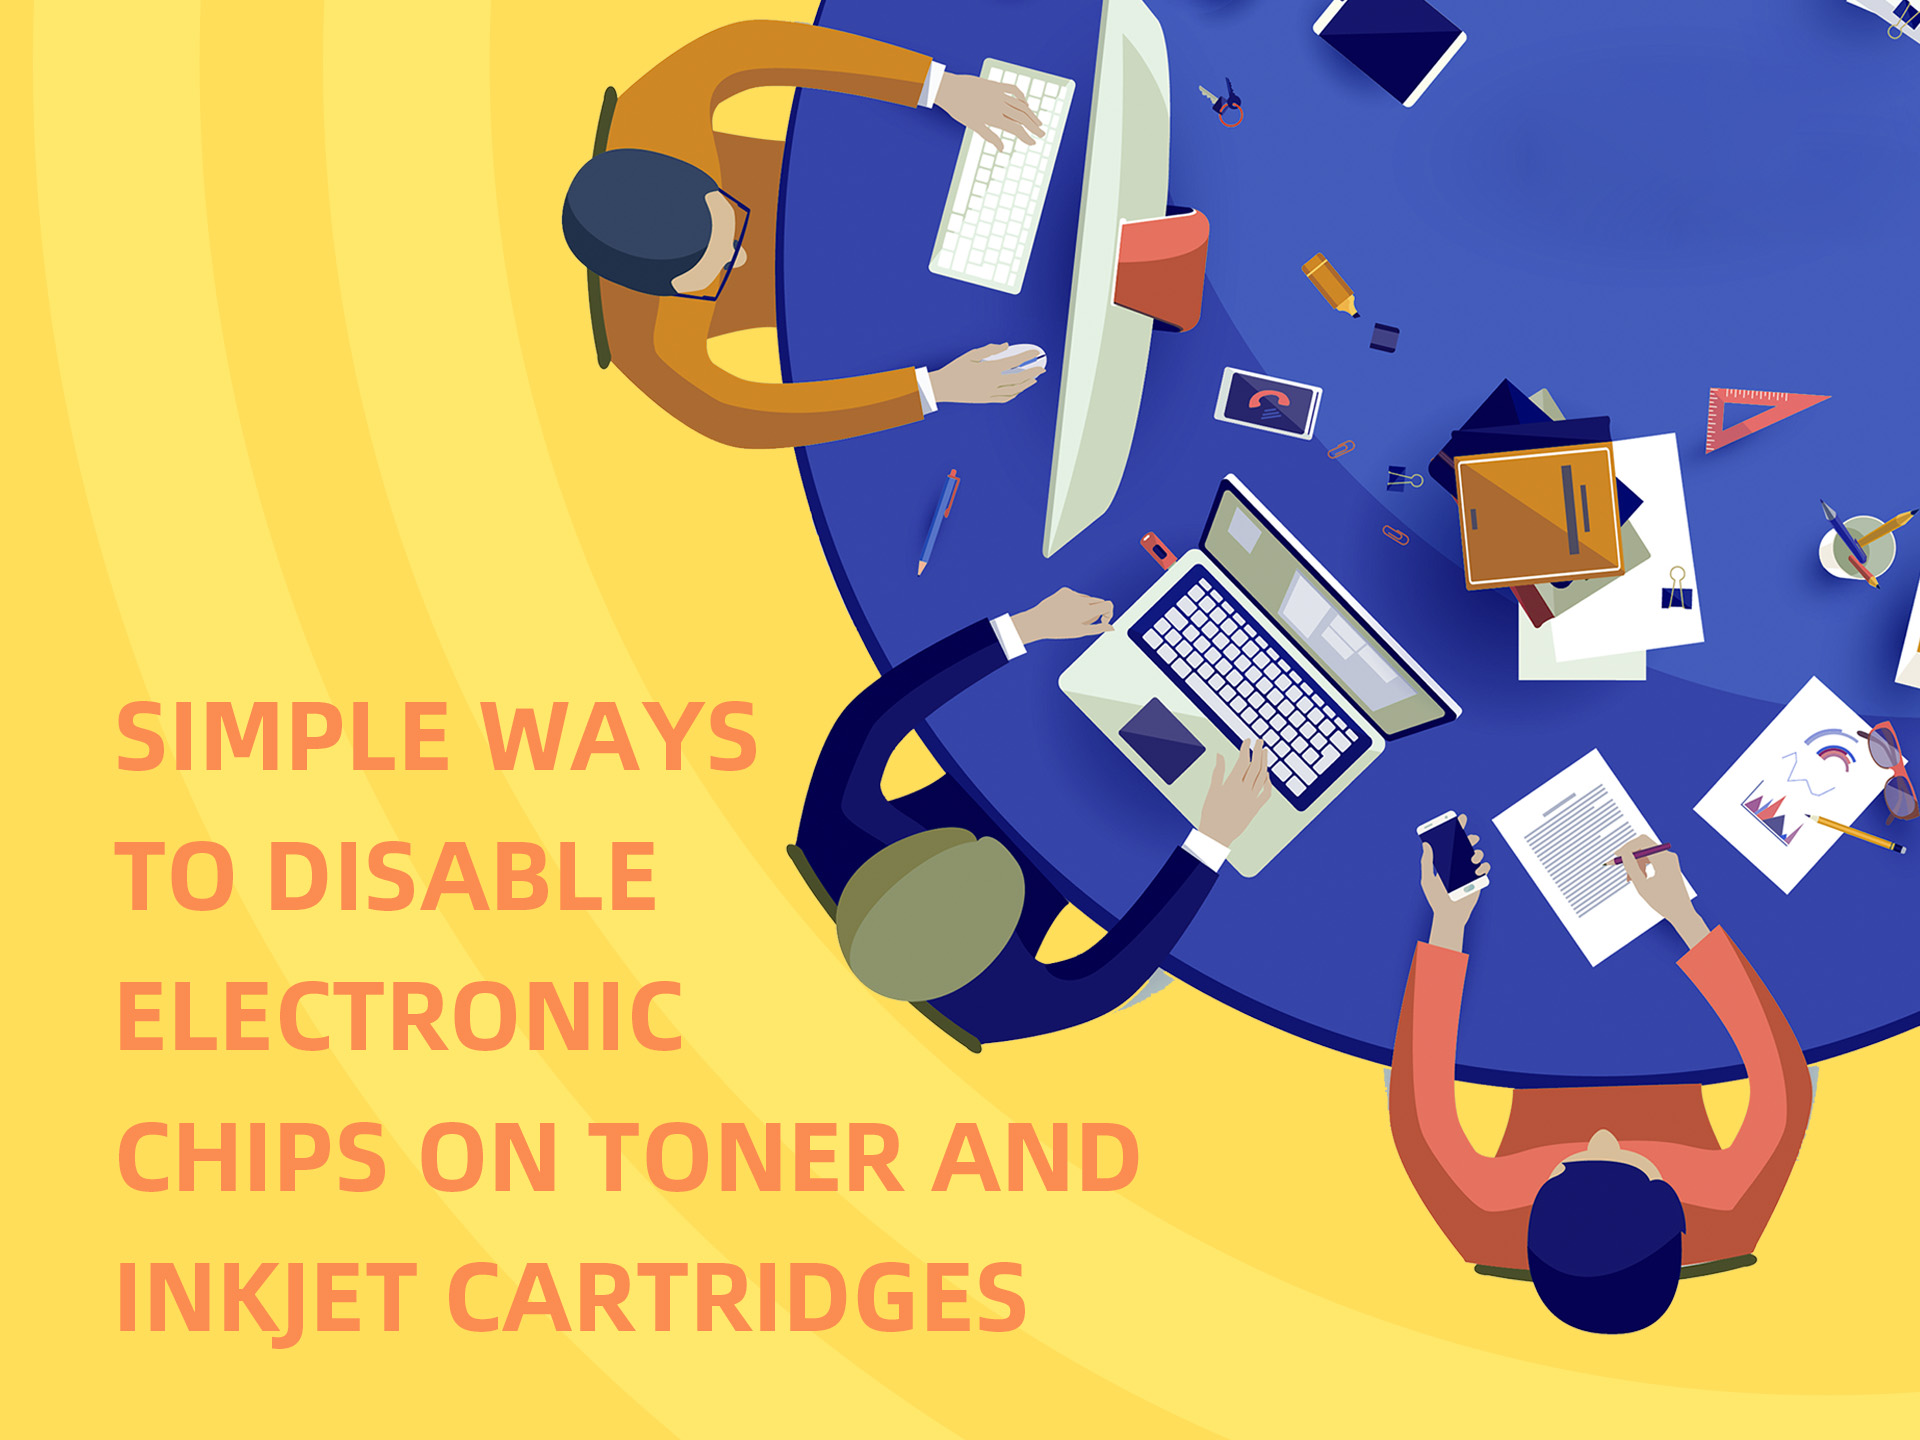 Simple Ways to Disable Electronic Chips on Toner and Inkjet Cartridges